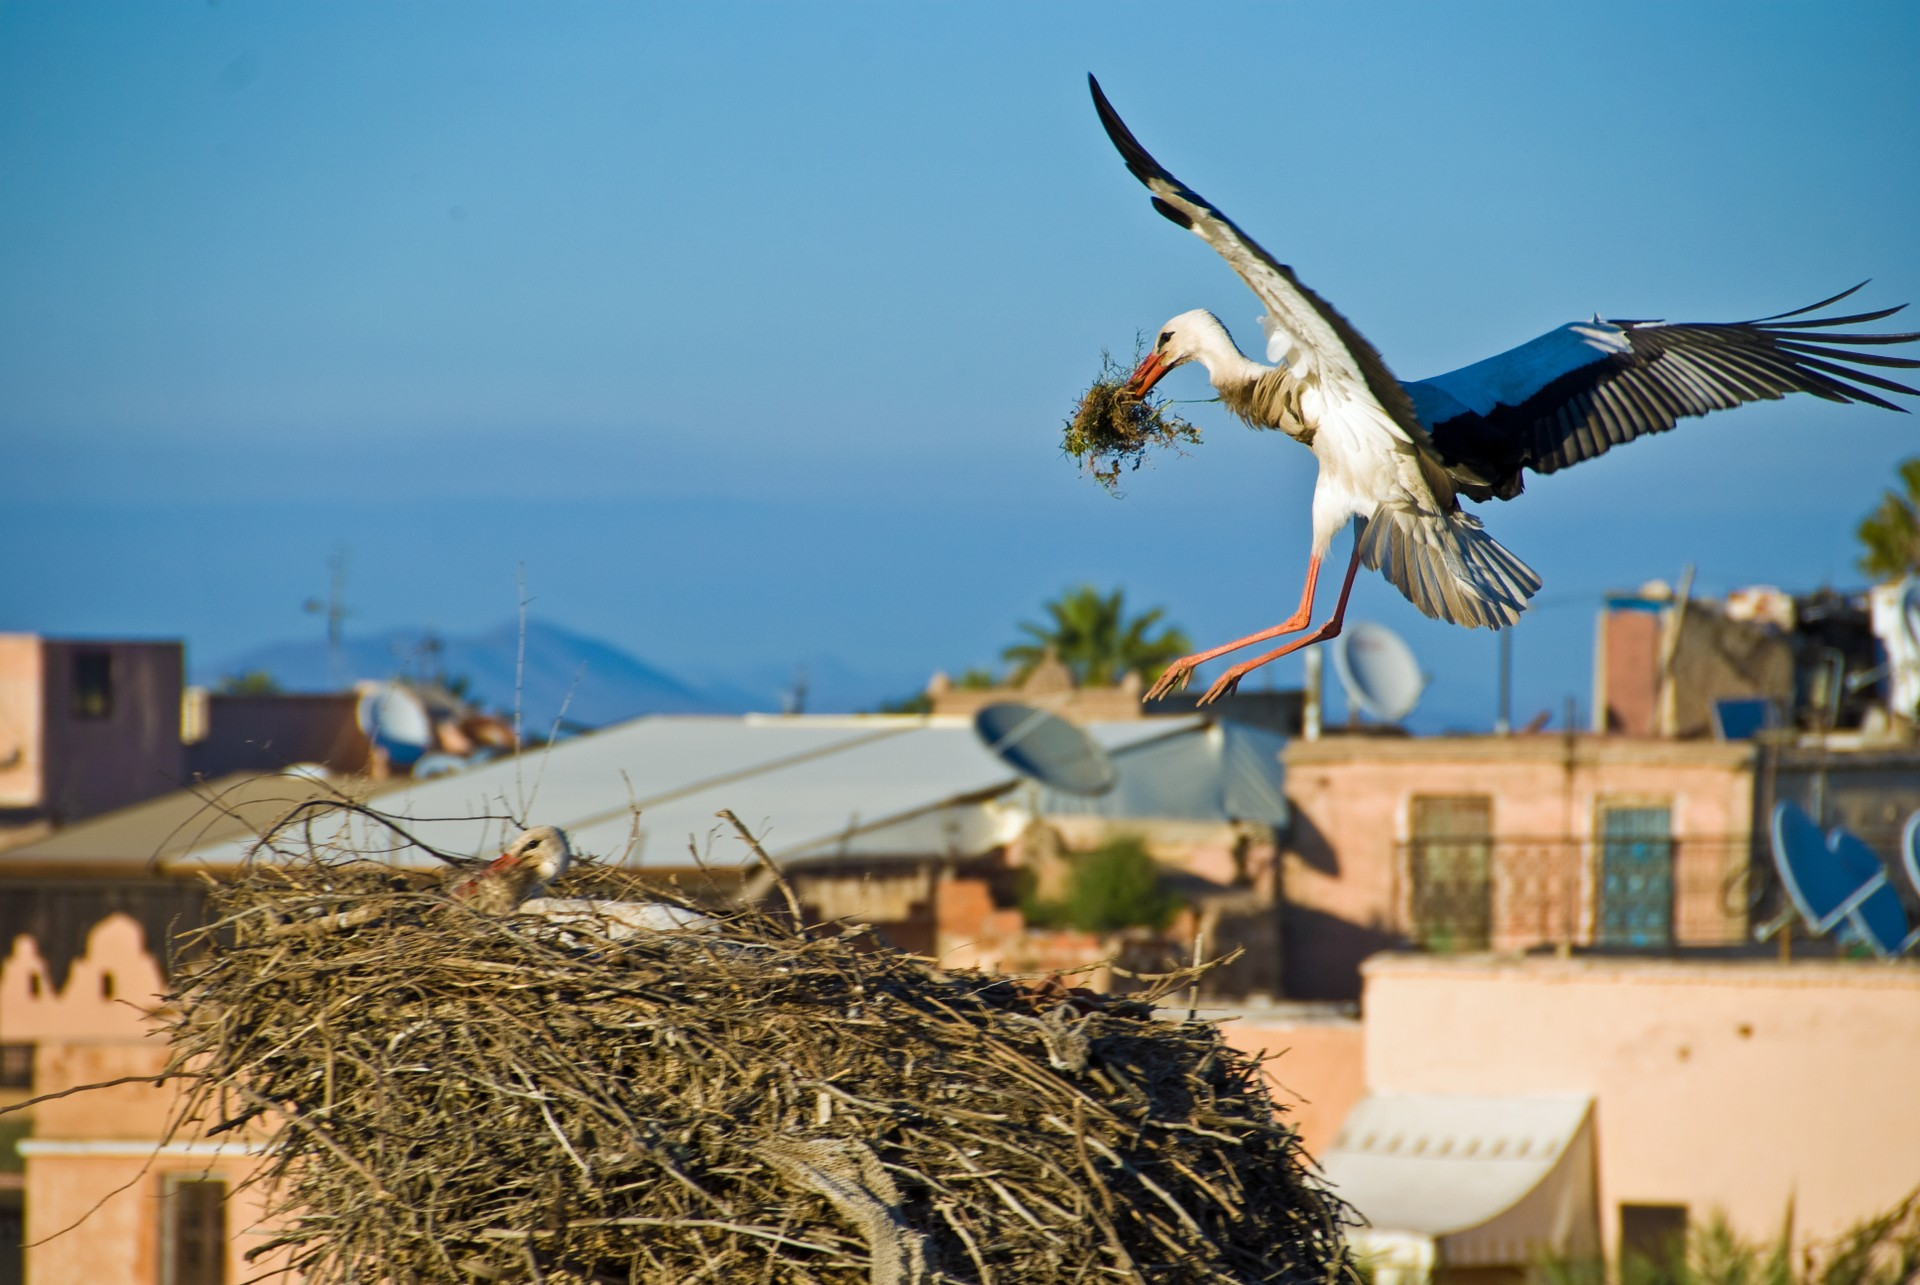 Stork building nest in Marrakesh